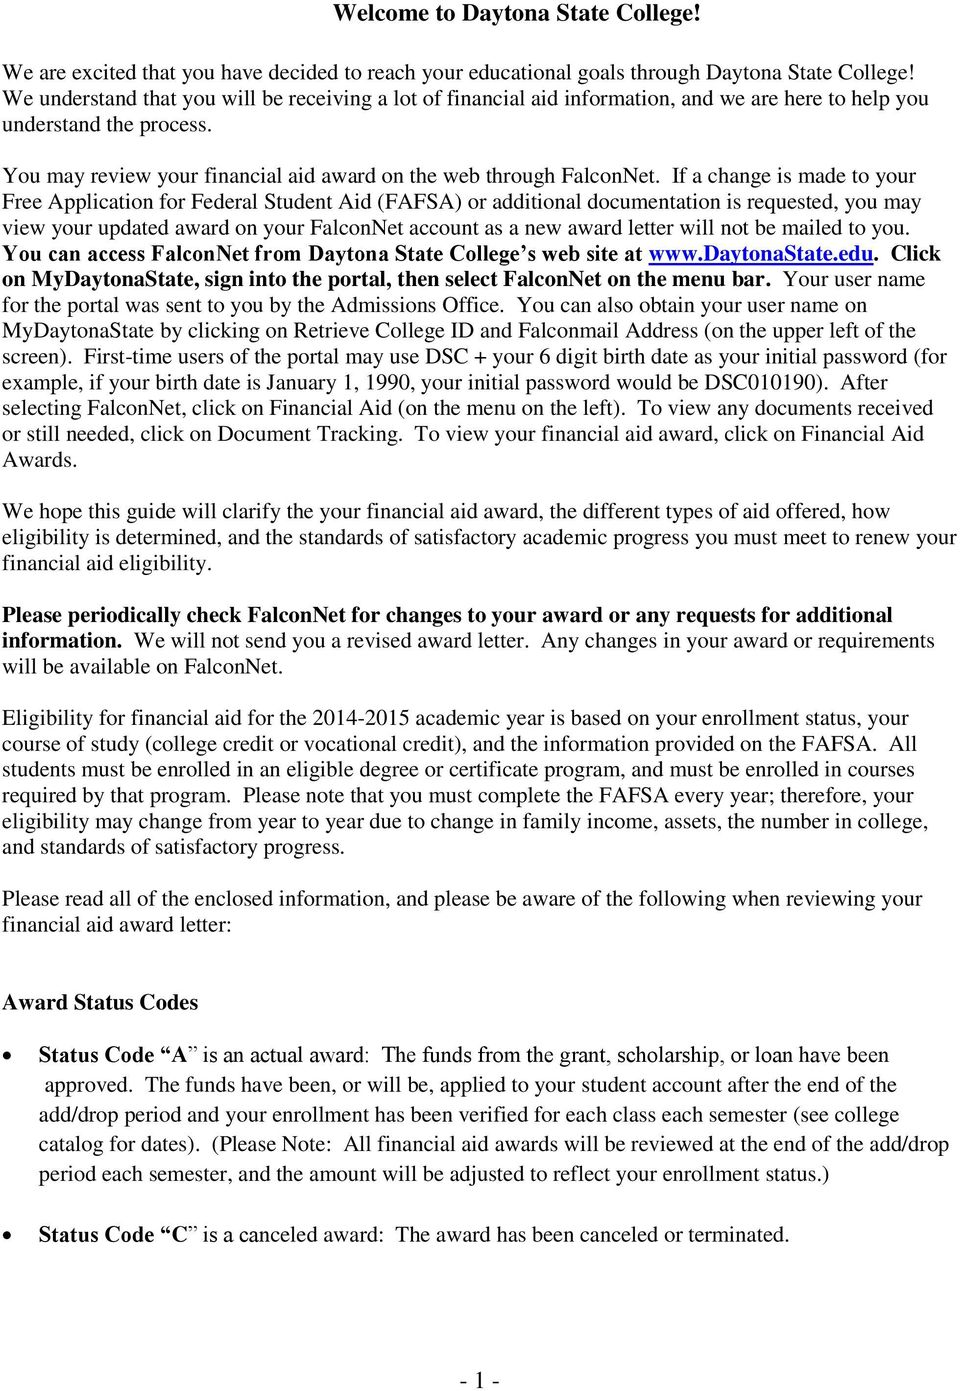 If a change is made t yur Free Applicatin fr Federal Student Aid (FAFSA) r additinal dcumentatin is requested, yu may view yur updated award n yur FalcnNet accunt as a new award letter will nt be